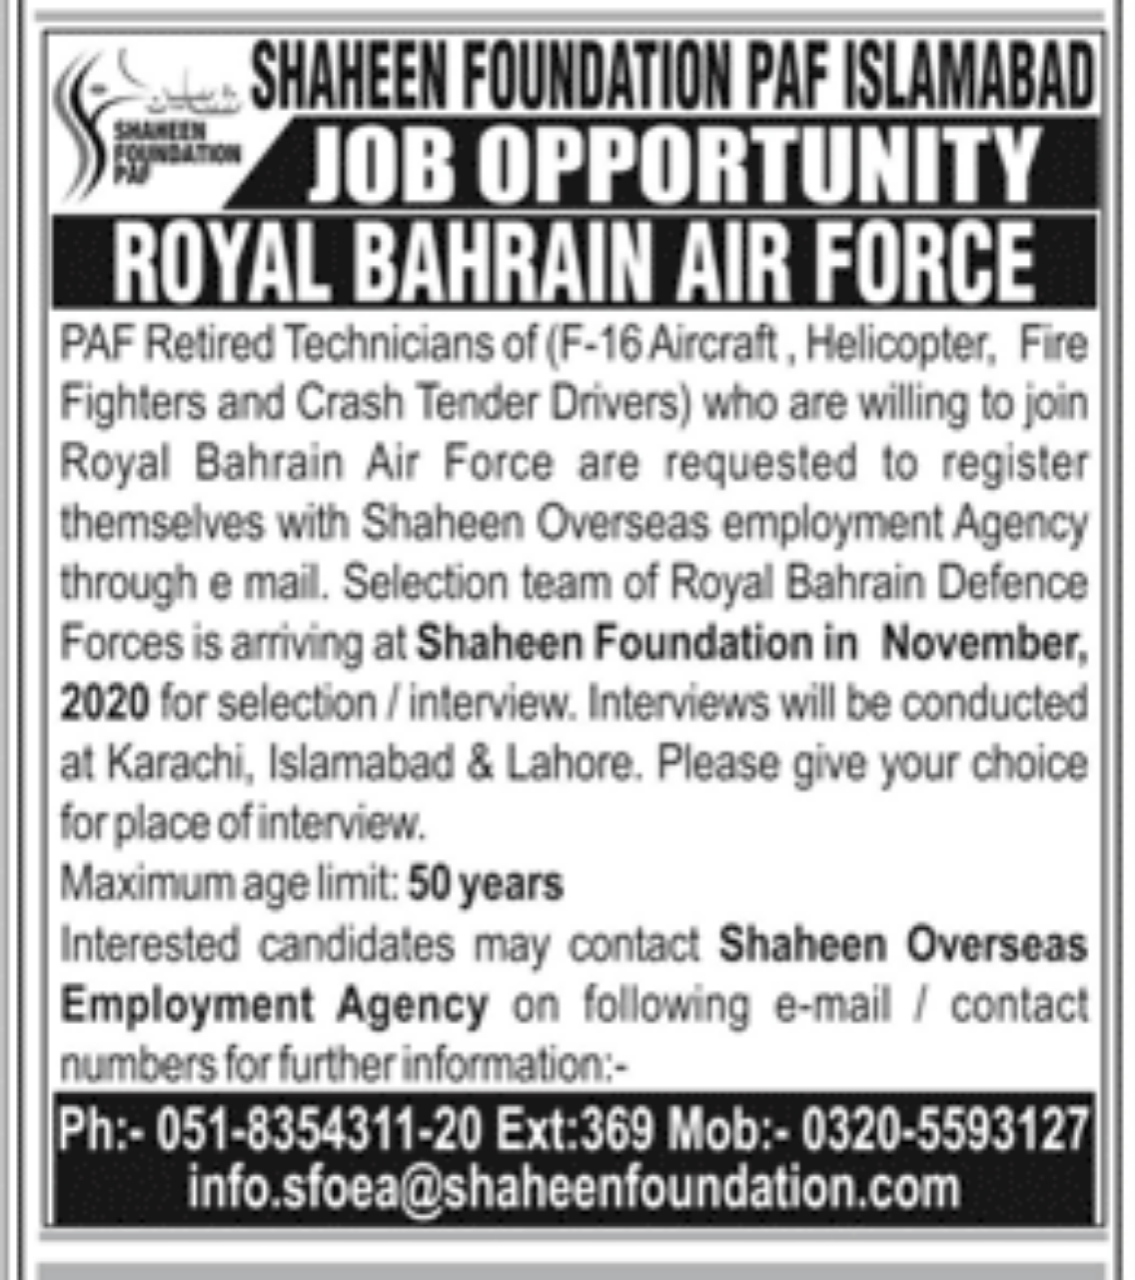 PAF Shaheen Foundation Jobs